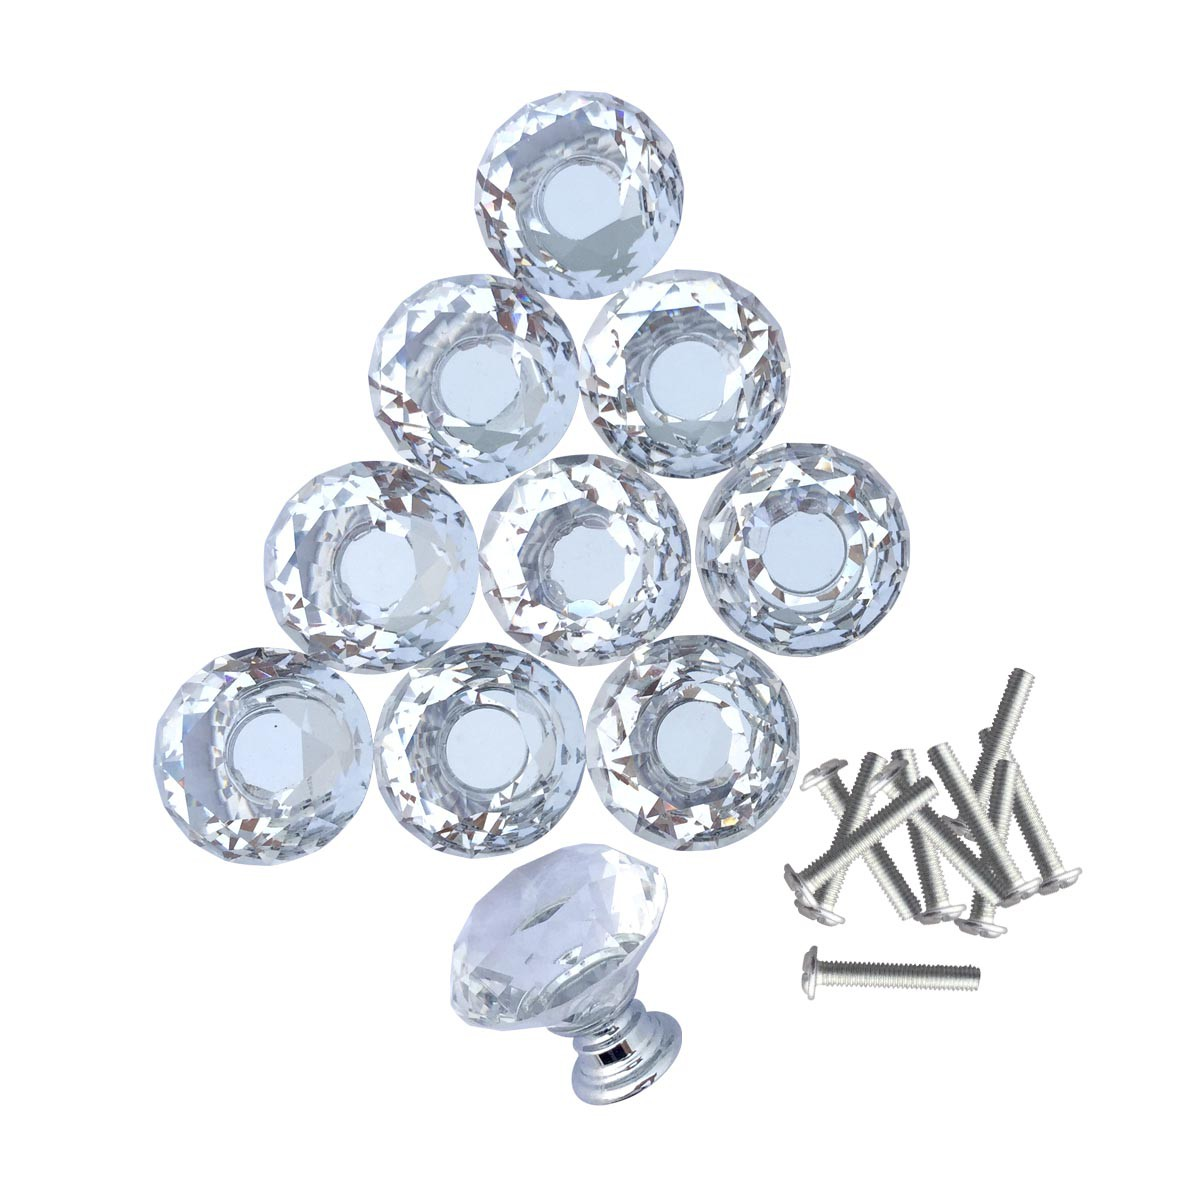 Clear Glass Cabinet Knobs 1.8 Inch Projection Mushroom 20 pcs Cabinet Hardware Cabinet Knobs Cabinet Knob